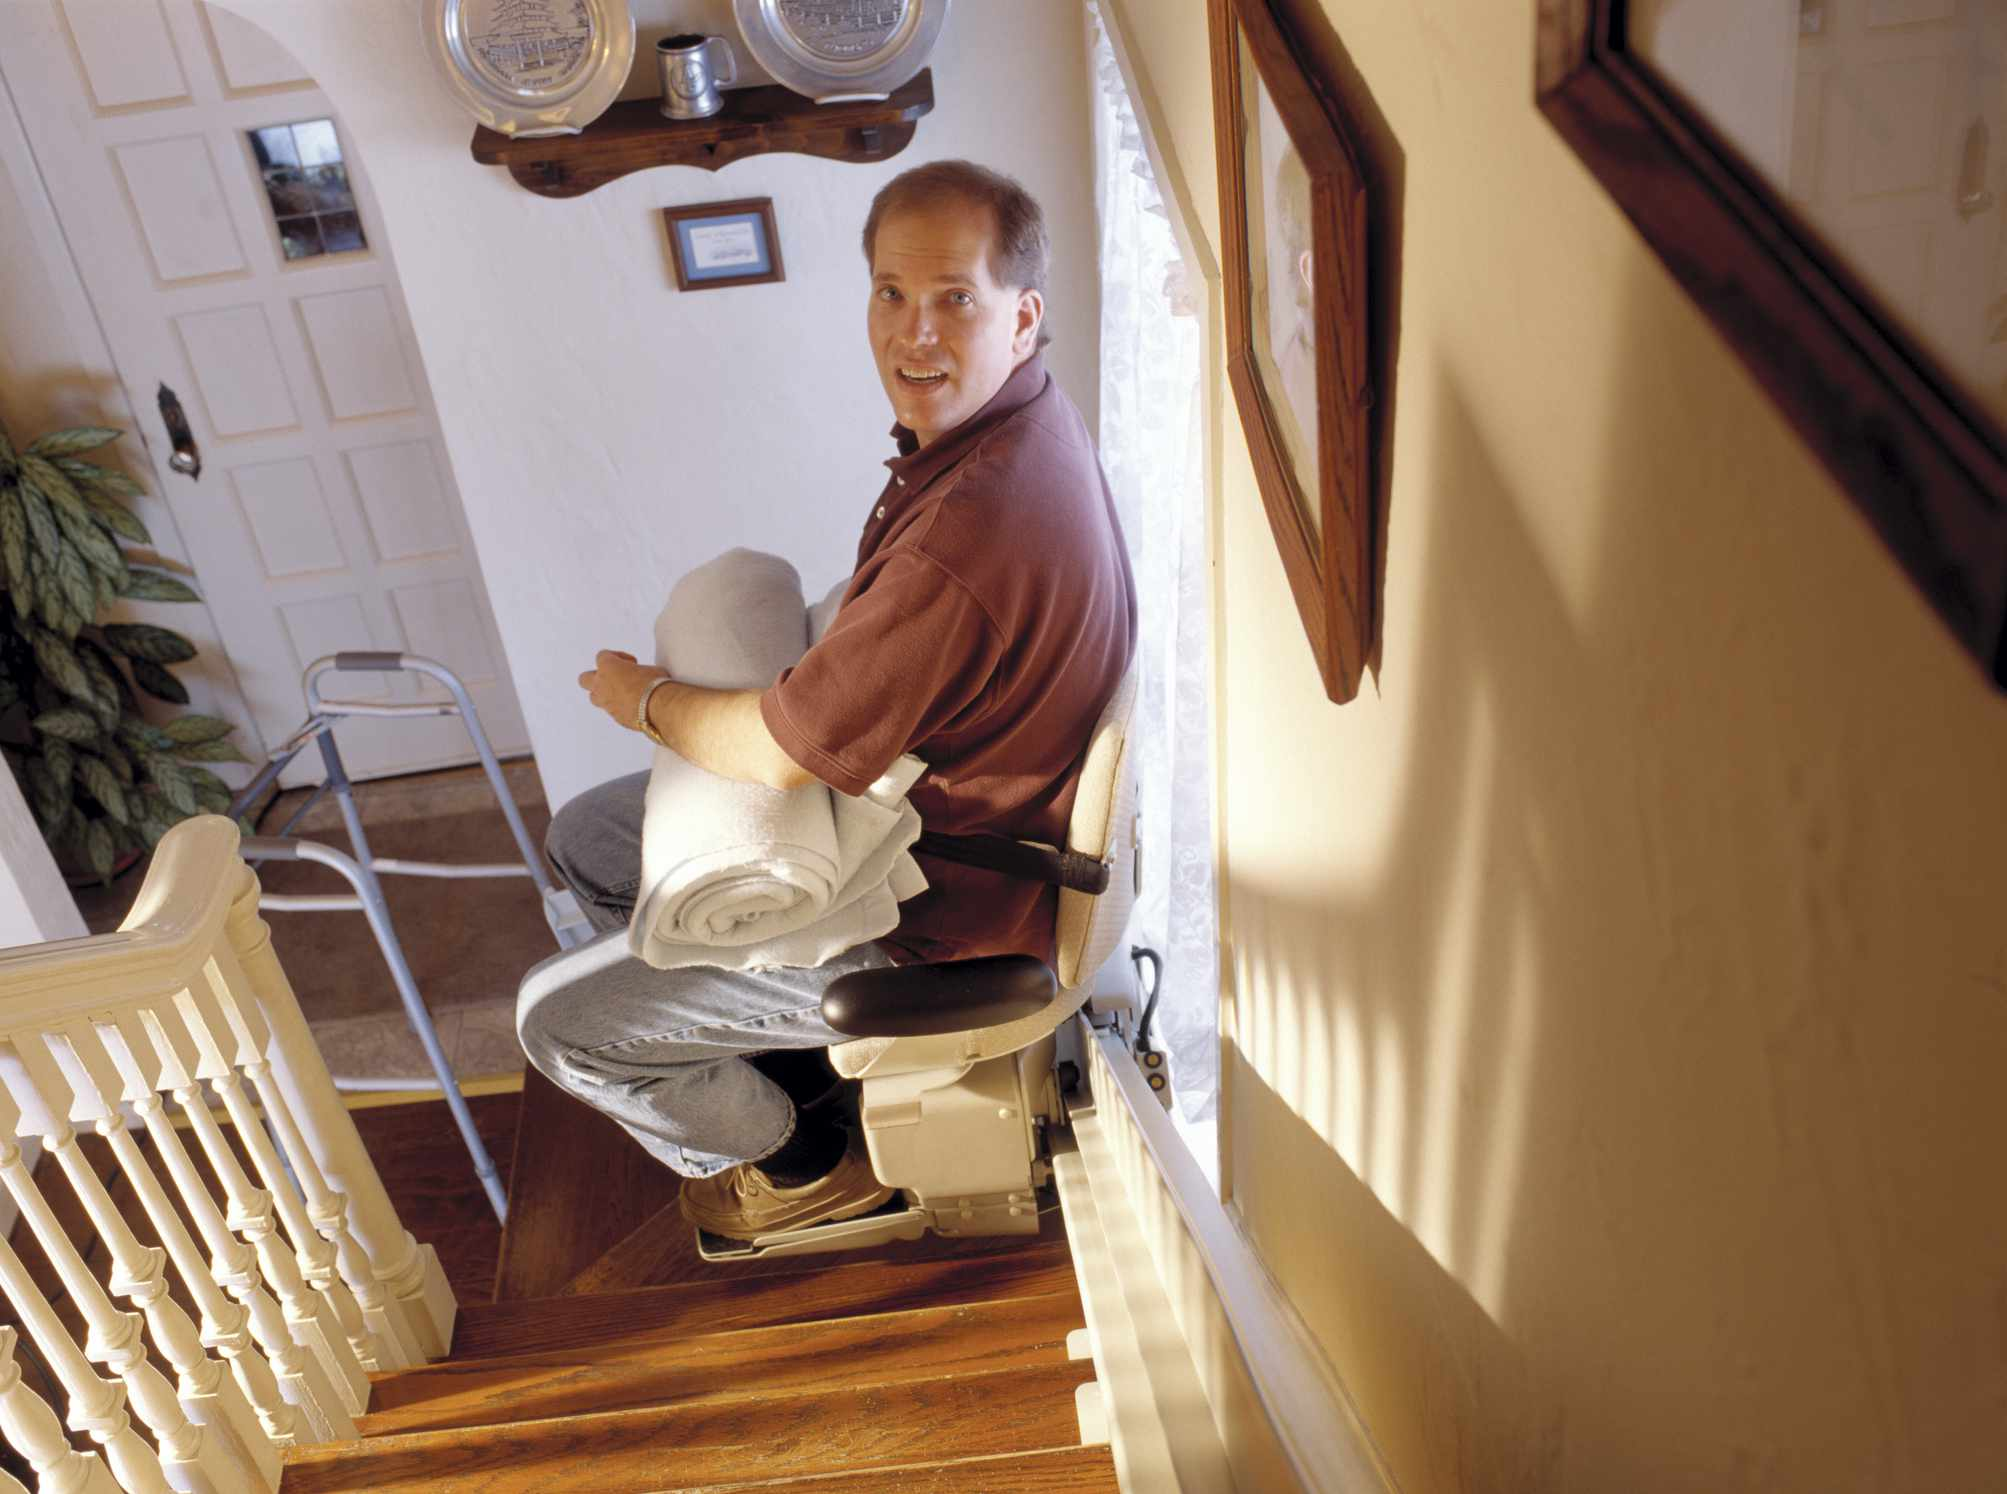 Man moving up a stair lift in his home